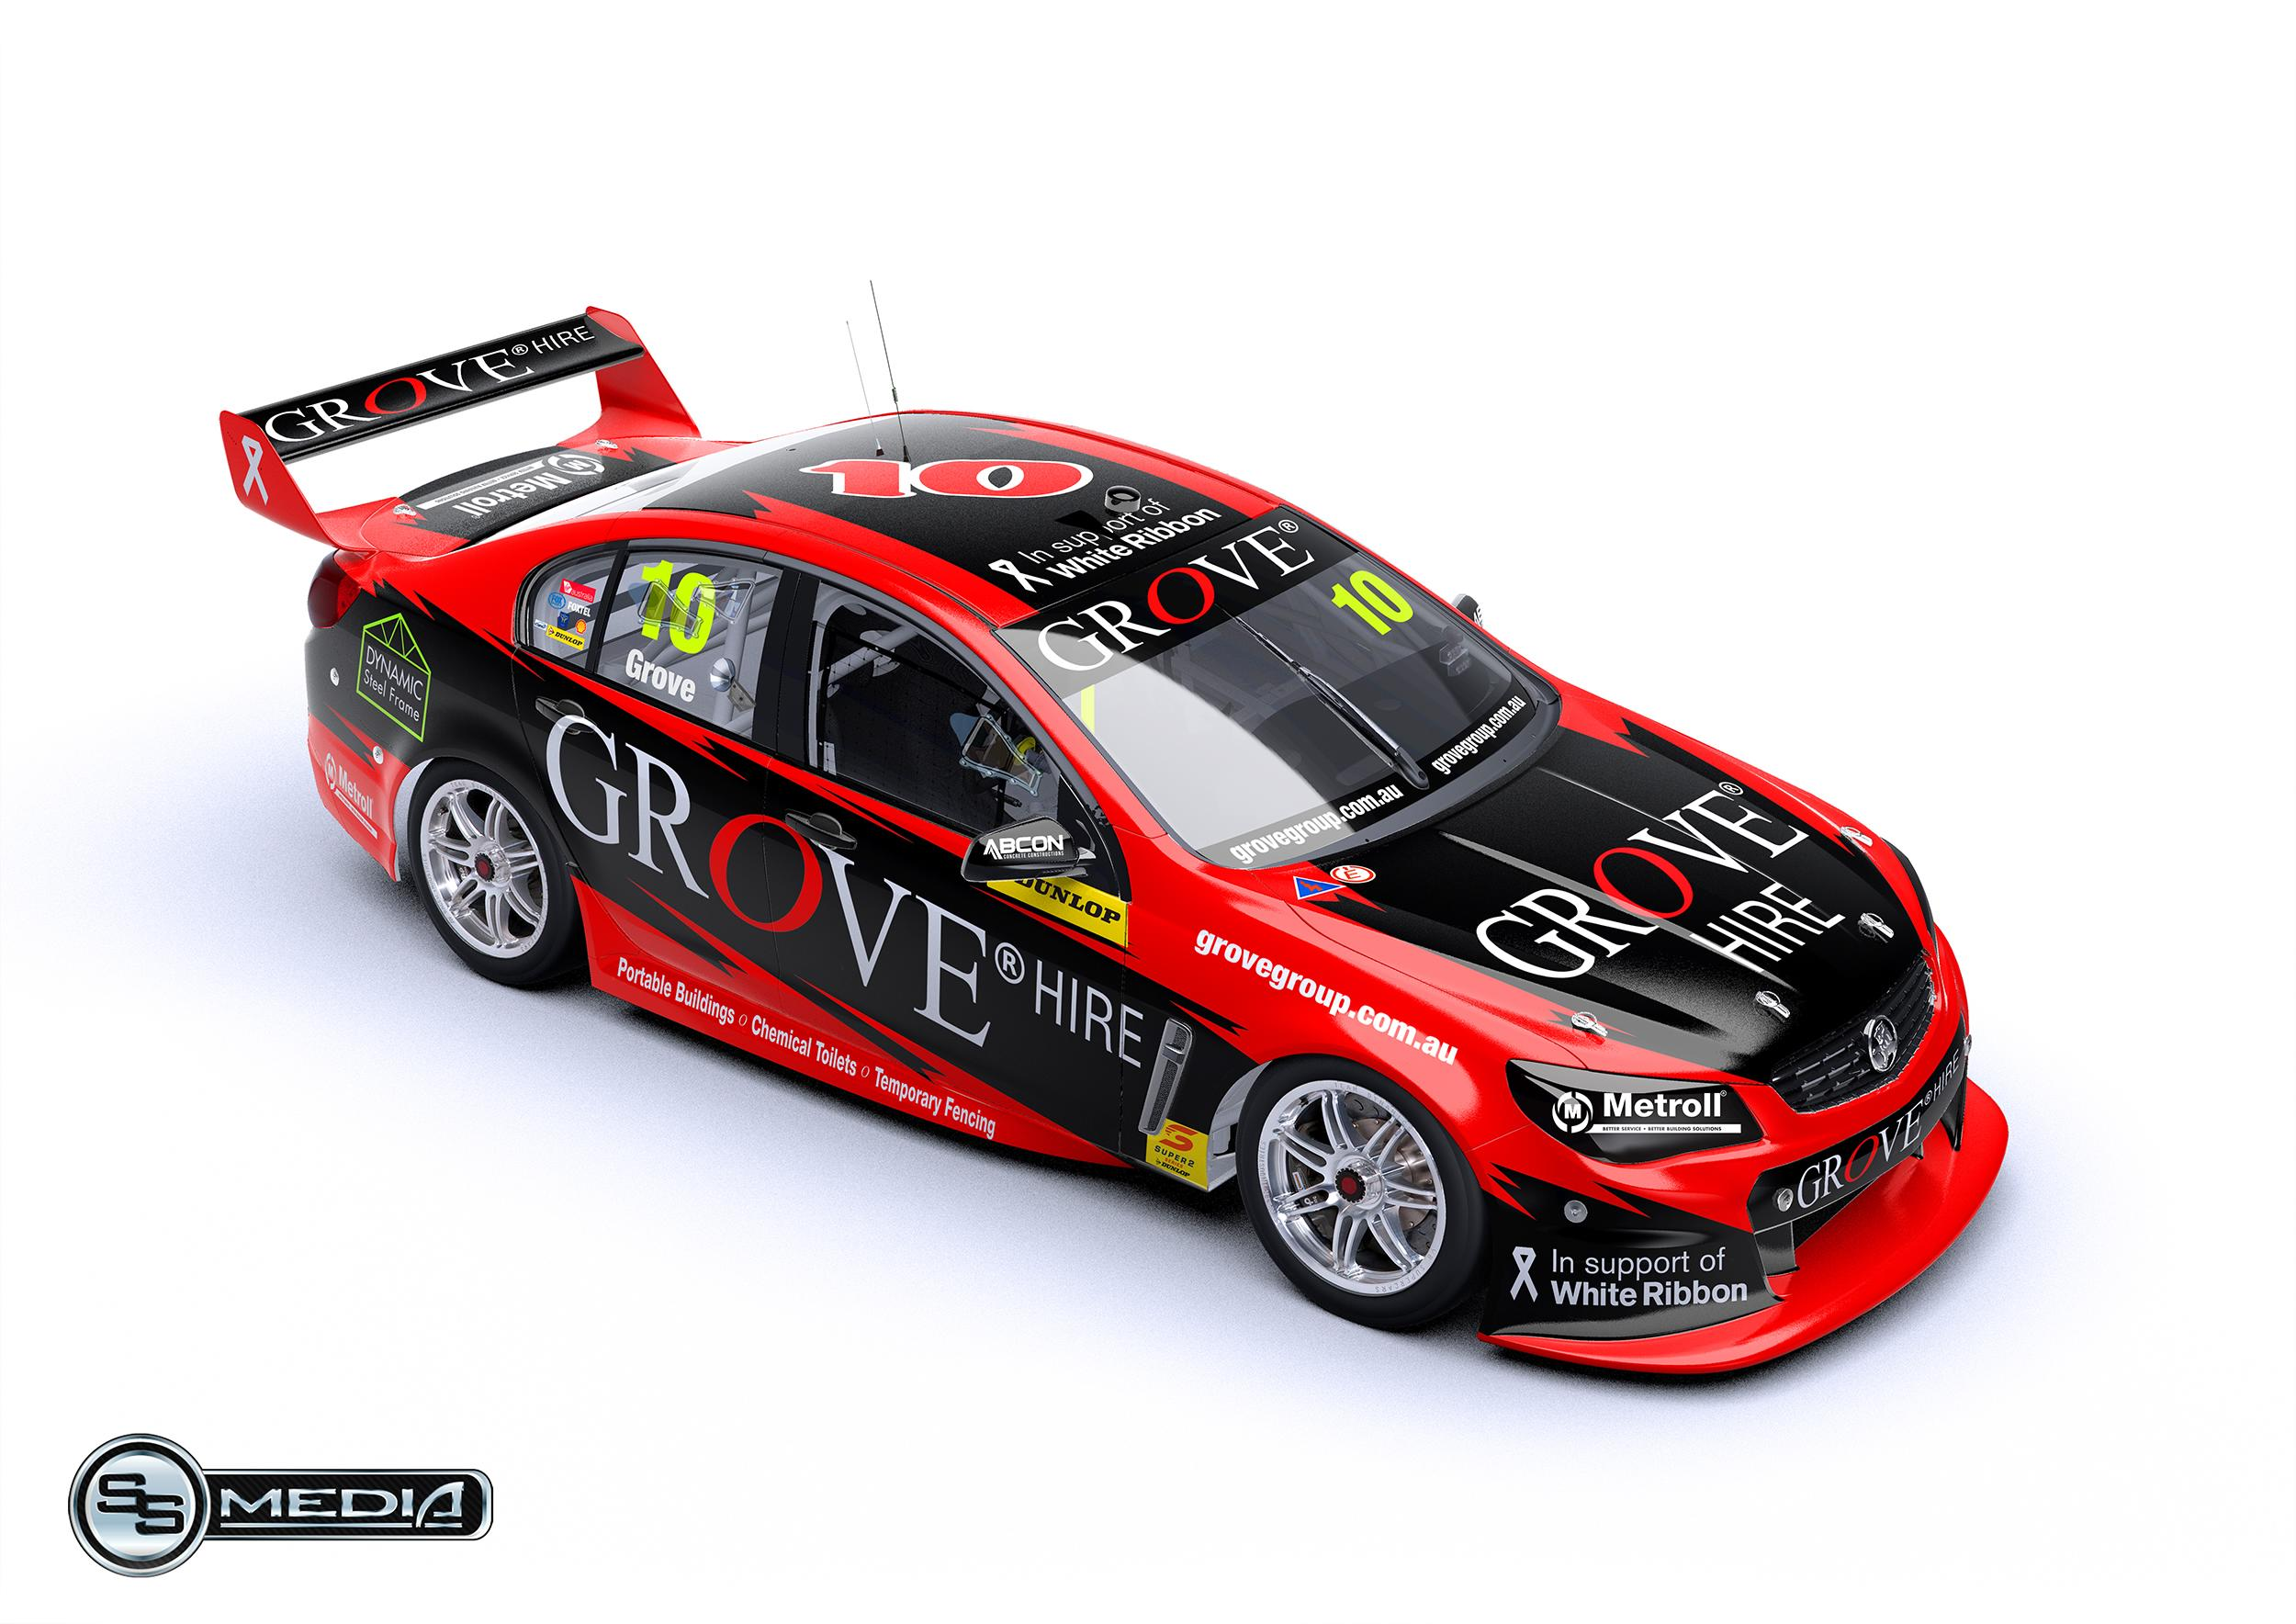 A render of the livery Brenton Grove will be running in the Dunlop Super2 Series this year.